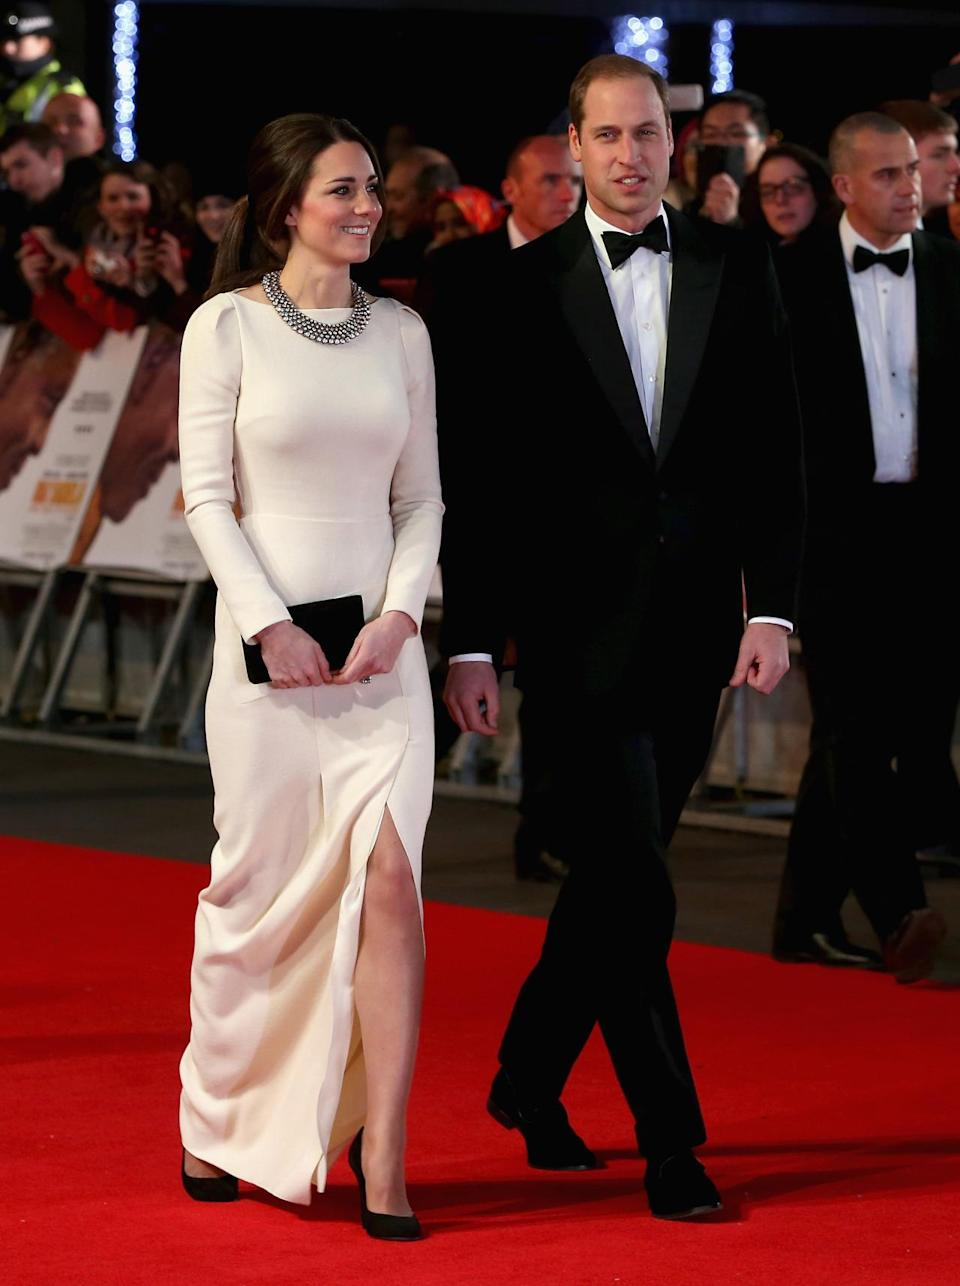 <p>A stunning white Roland Mouret gown was Kate's outfit of choice for the Mandela: Long Walk to Freedom premiere. She accessorised with a beaded necklace from Zara, a Mulberry clutch and suede Prada pumps. </p><p><i>[Photo: PA]</i></p>